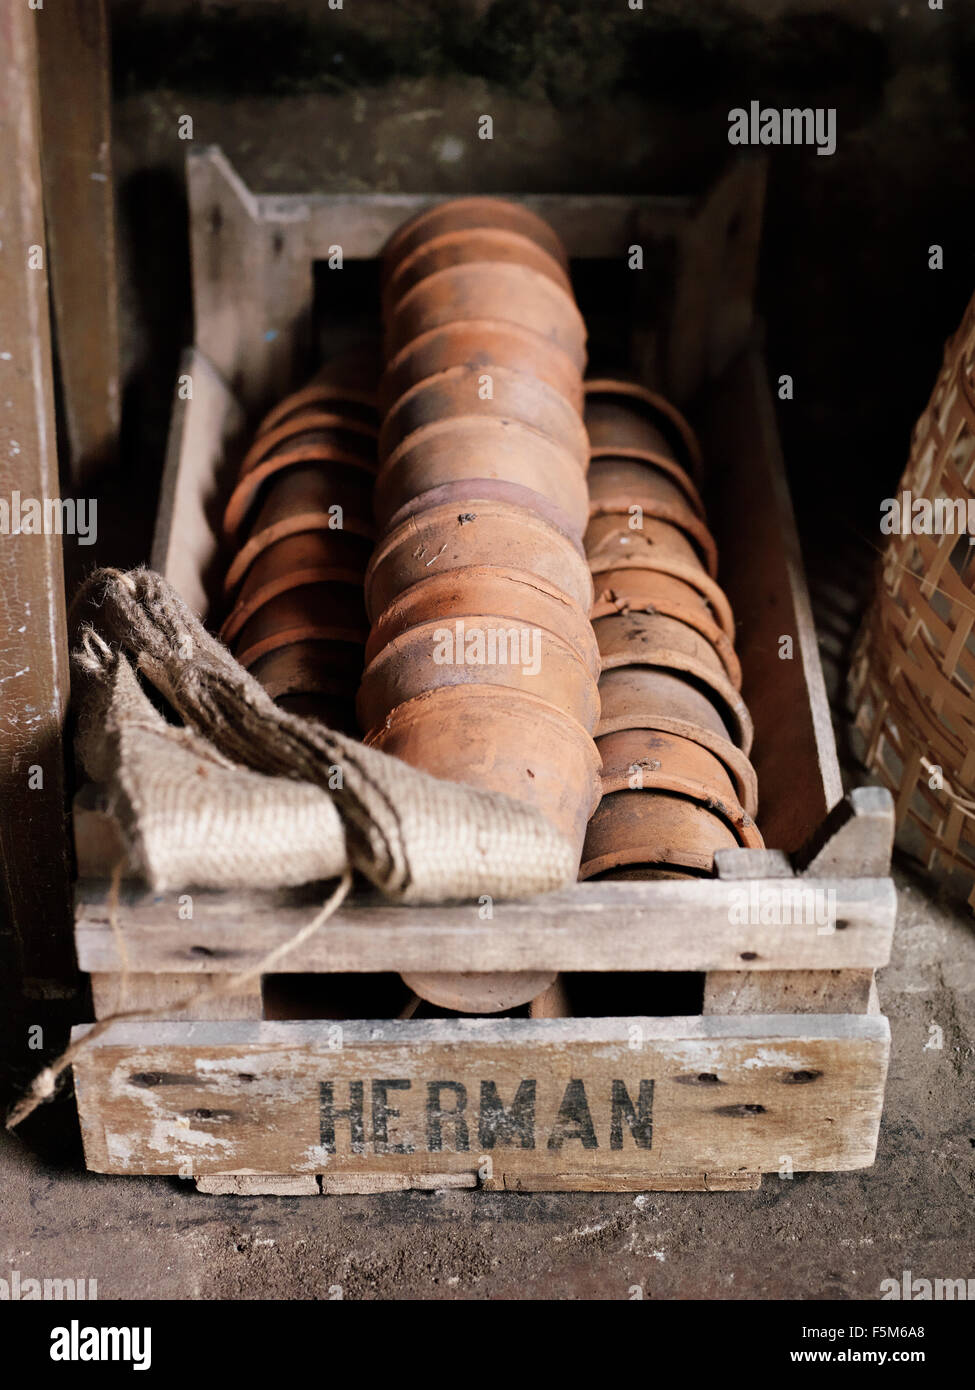 Flower pots in crate - Stock Image